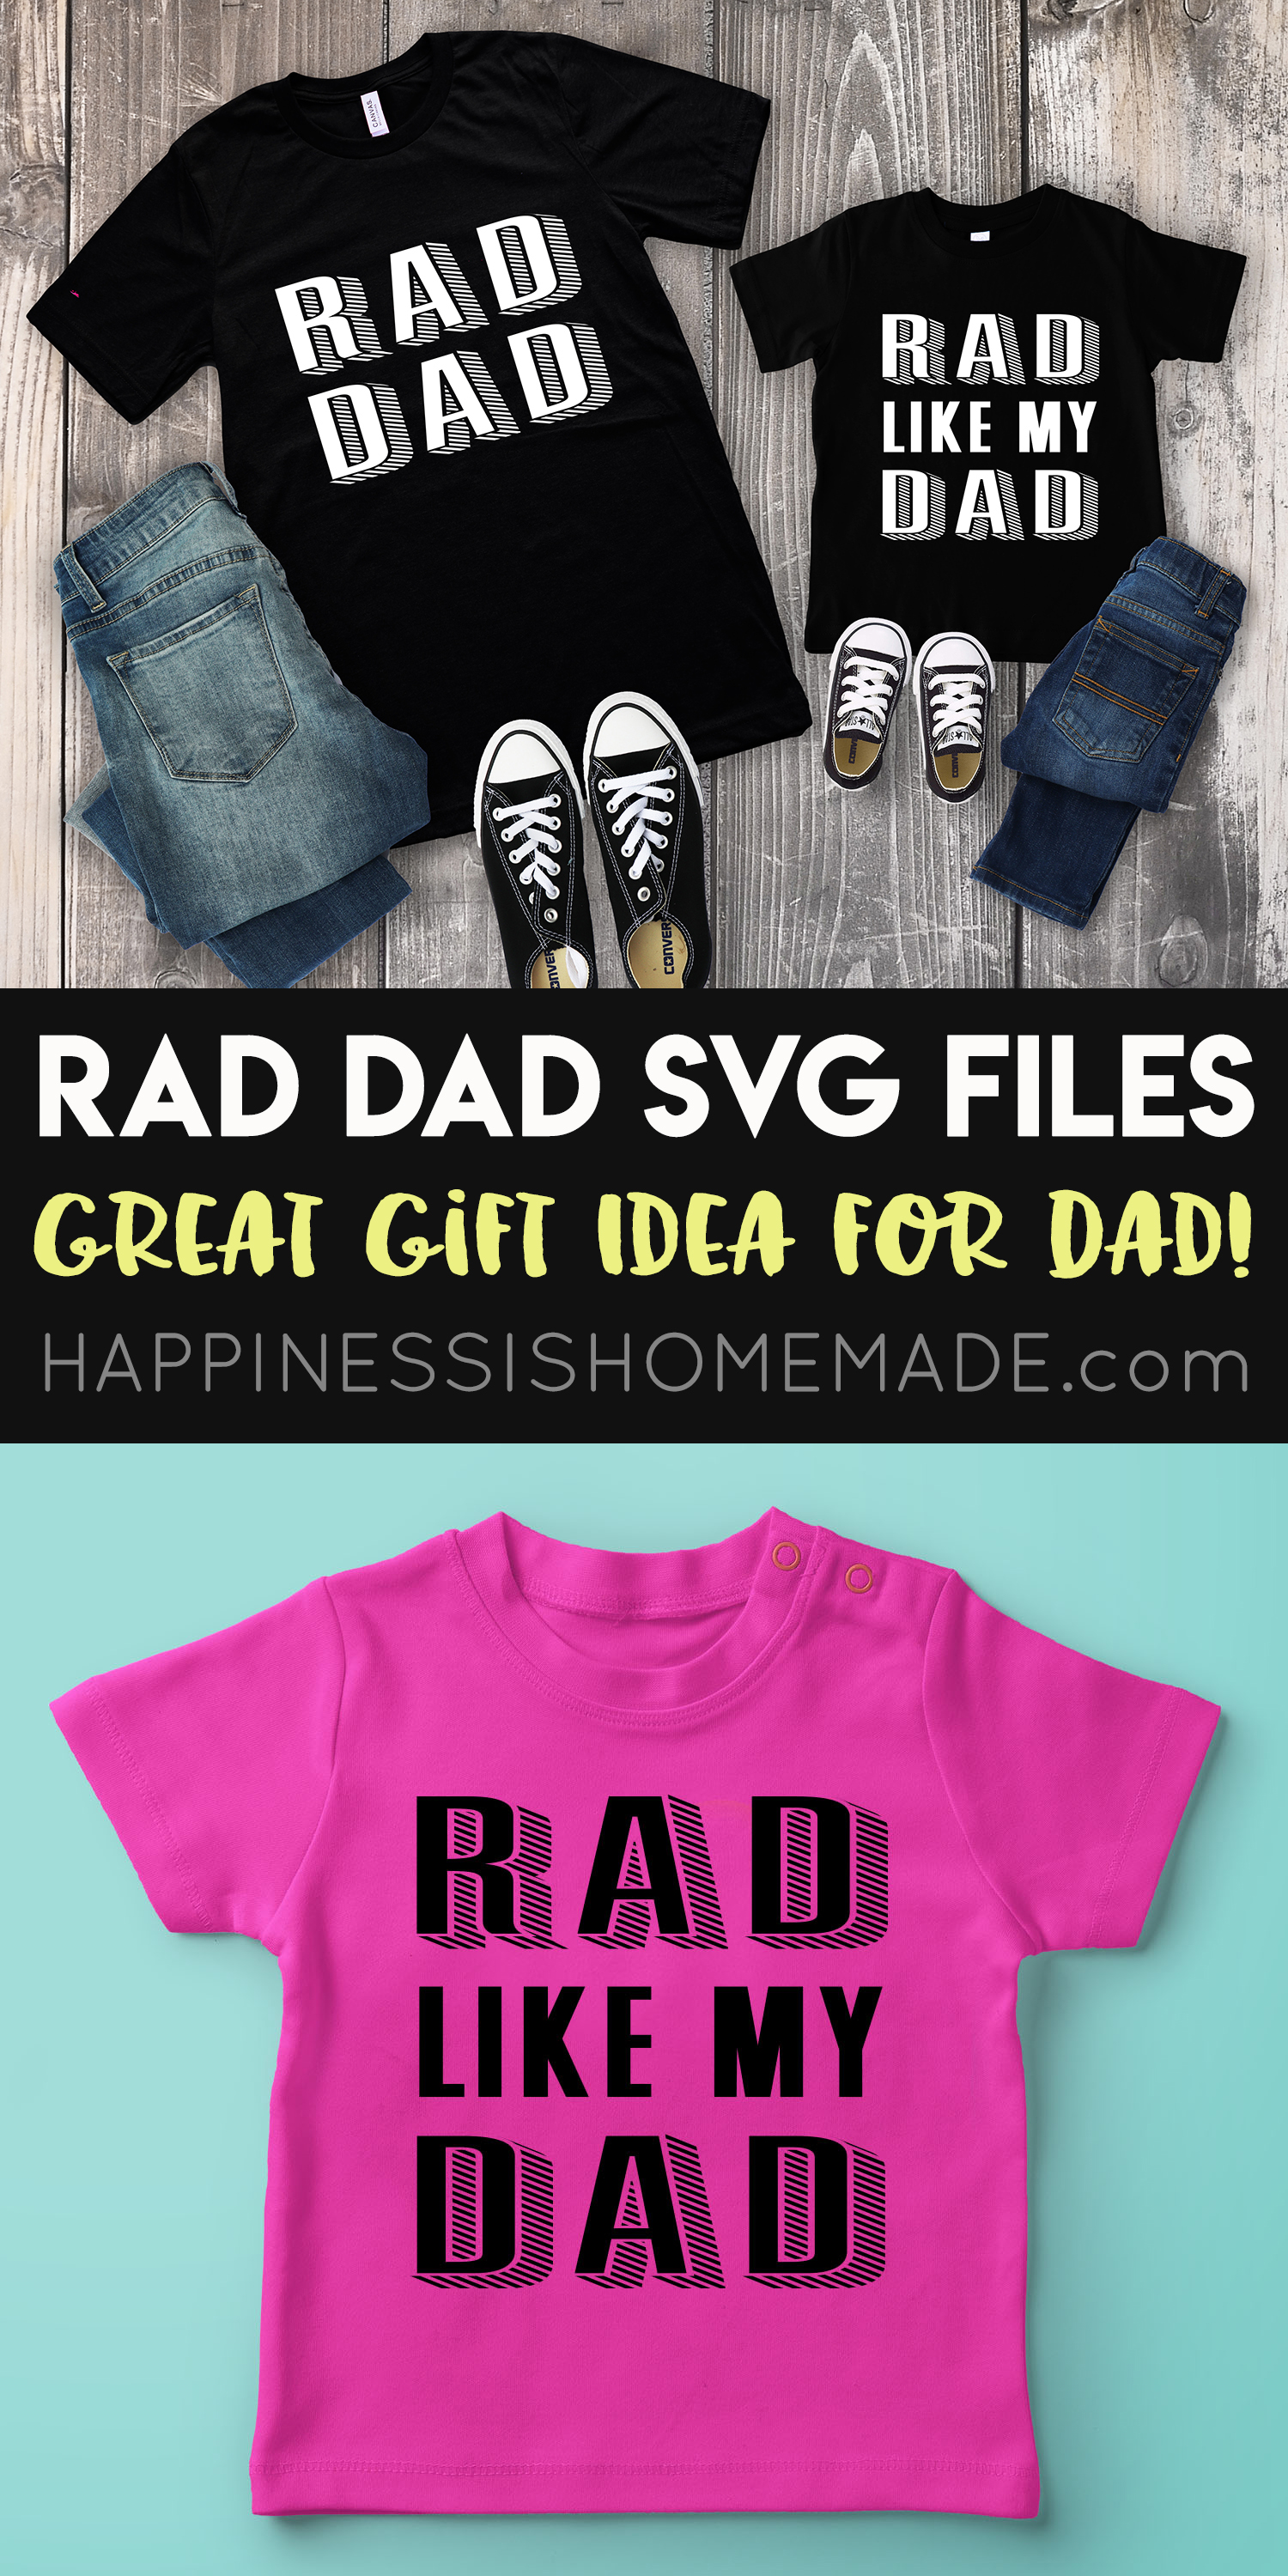 Rad Dad Father S Day Shirts Svg Files Happiness Is